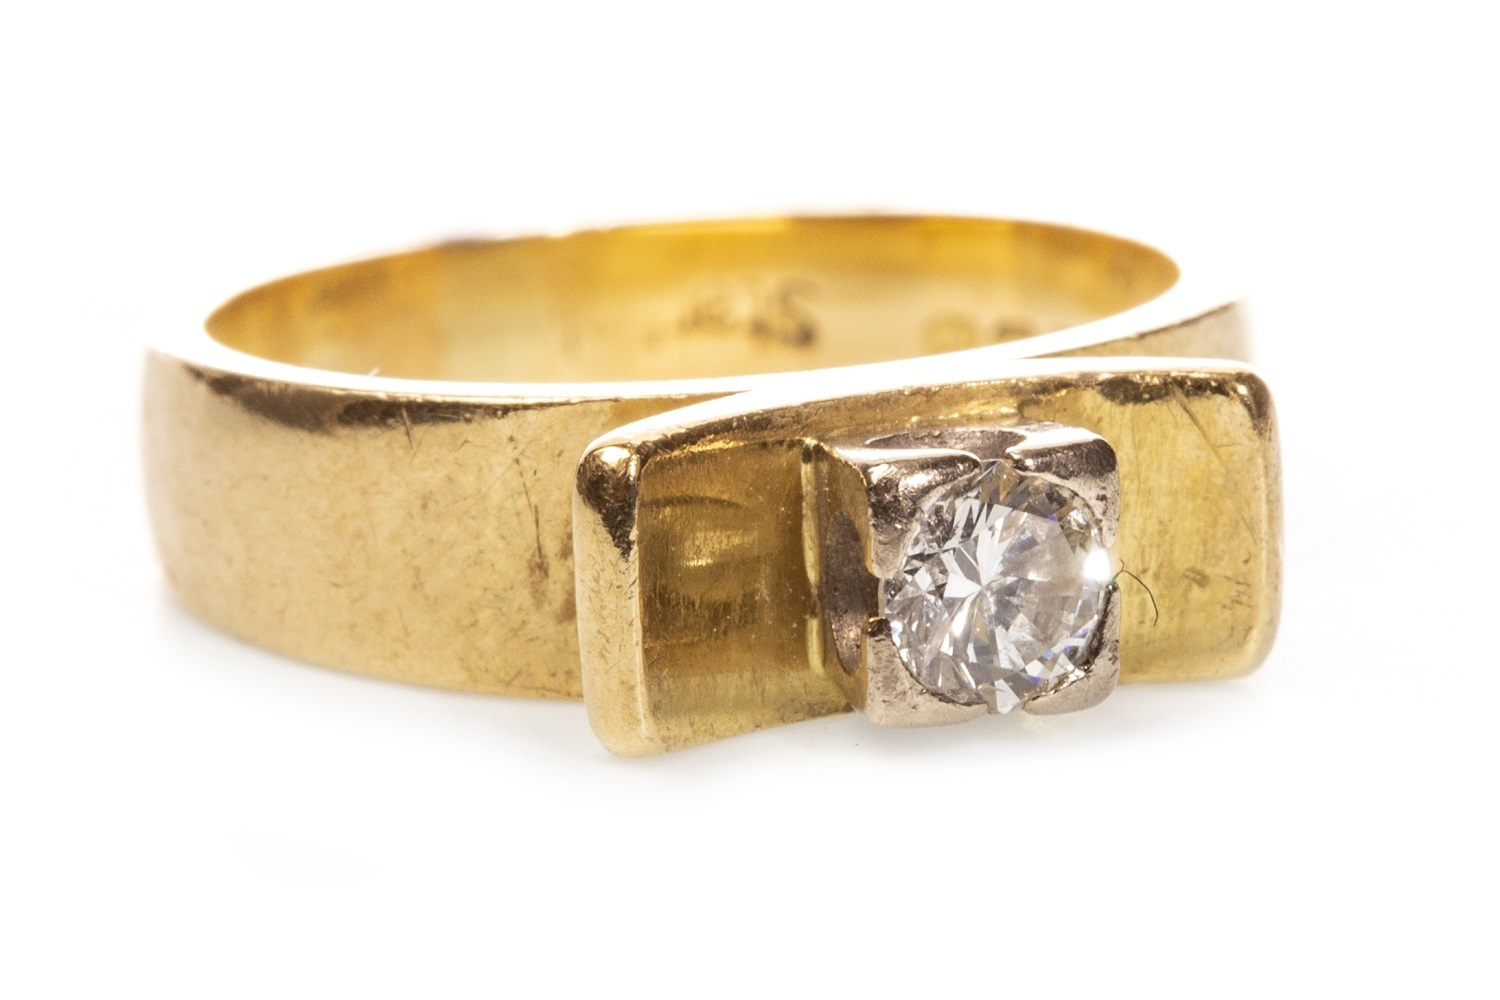 Lot 102 - A DIAMOND SOLITAIRE RING